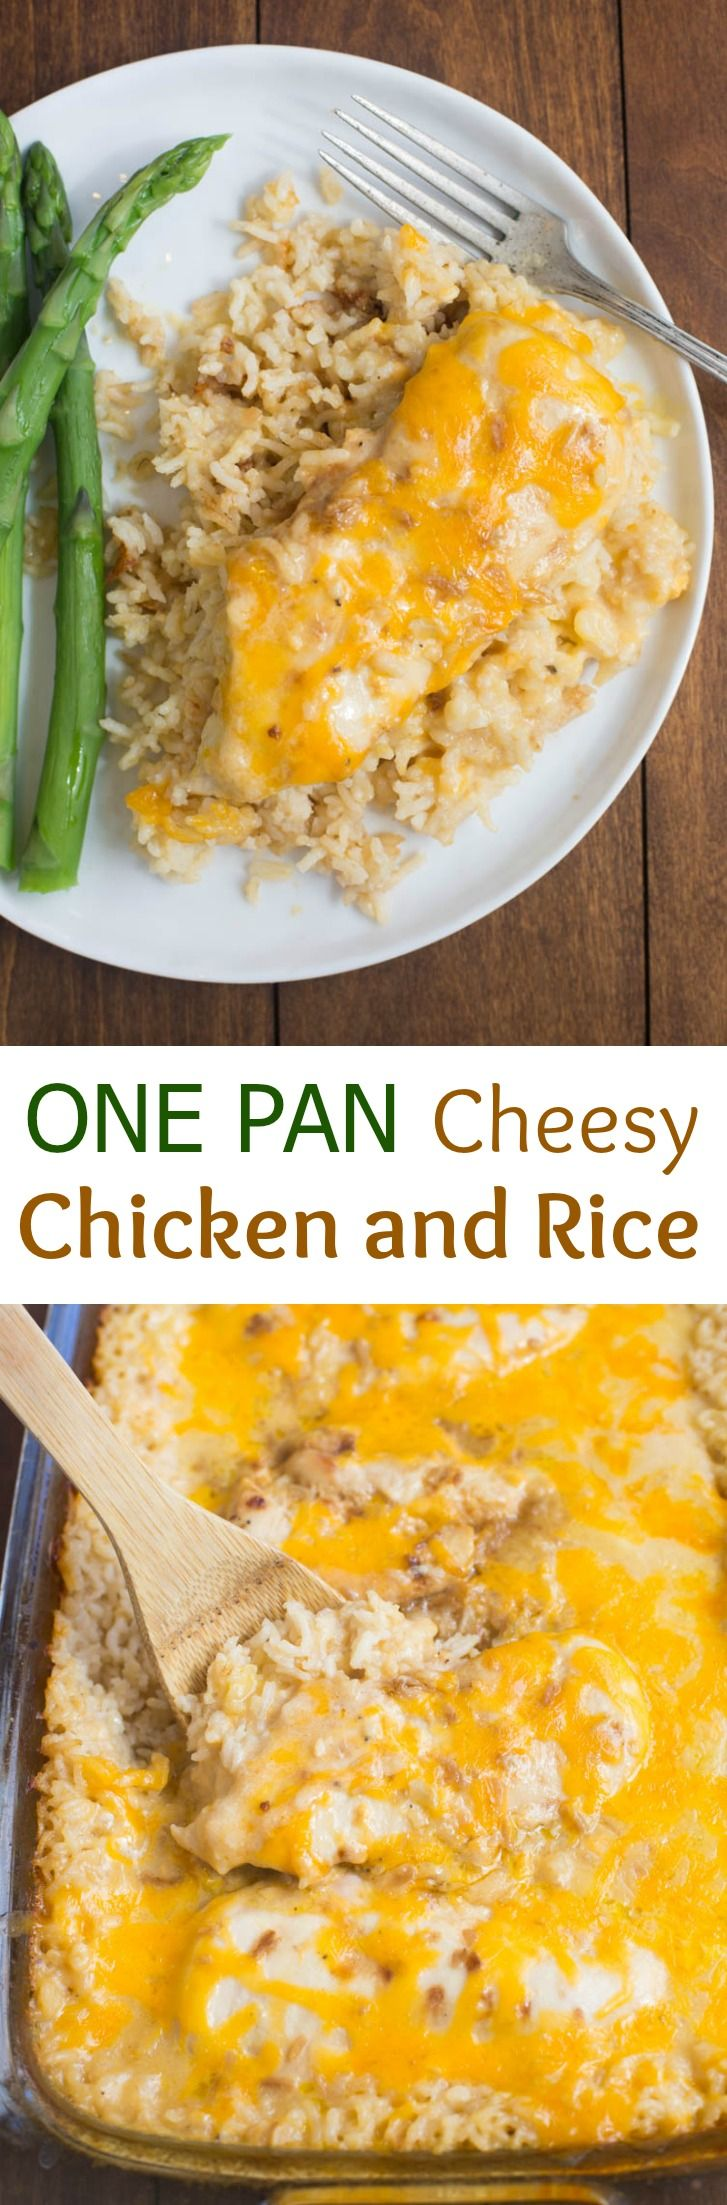 My family loves this easy One Pan Cheesy Chicken and Rice casserole. Just a few short minutes to throw together and let the oven do the rest.  Tastes Better From Scratch